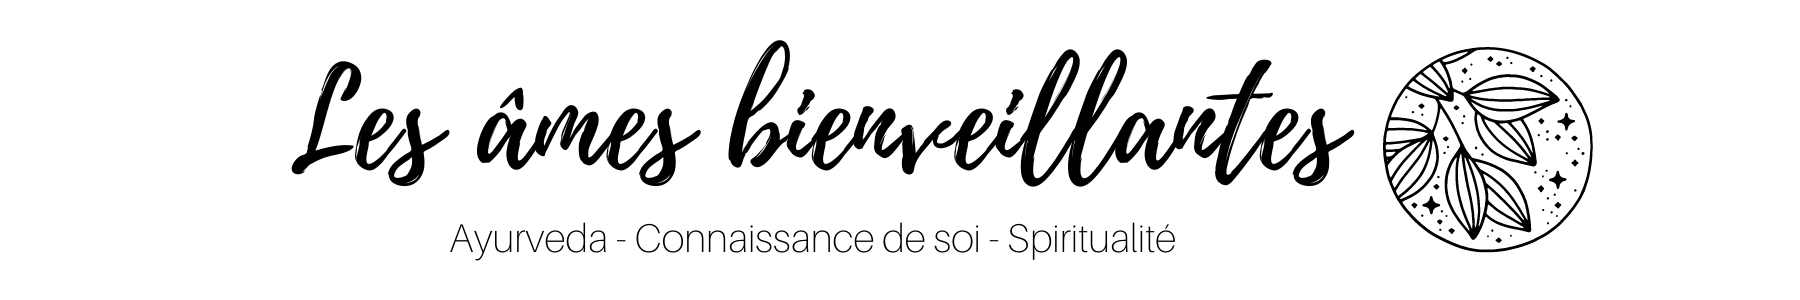 Coaching en santé holistique, naturopathie, ayurveda, psychologie positive, gestion du stress & guidance spirituelle, mission de vie, tarot de marseille, oracles